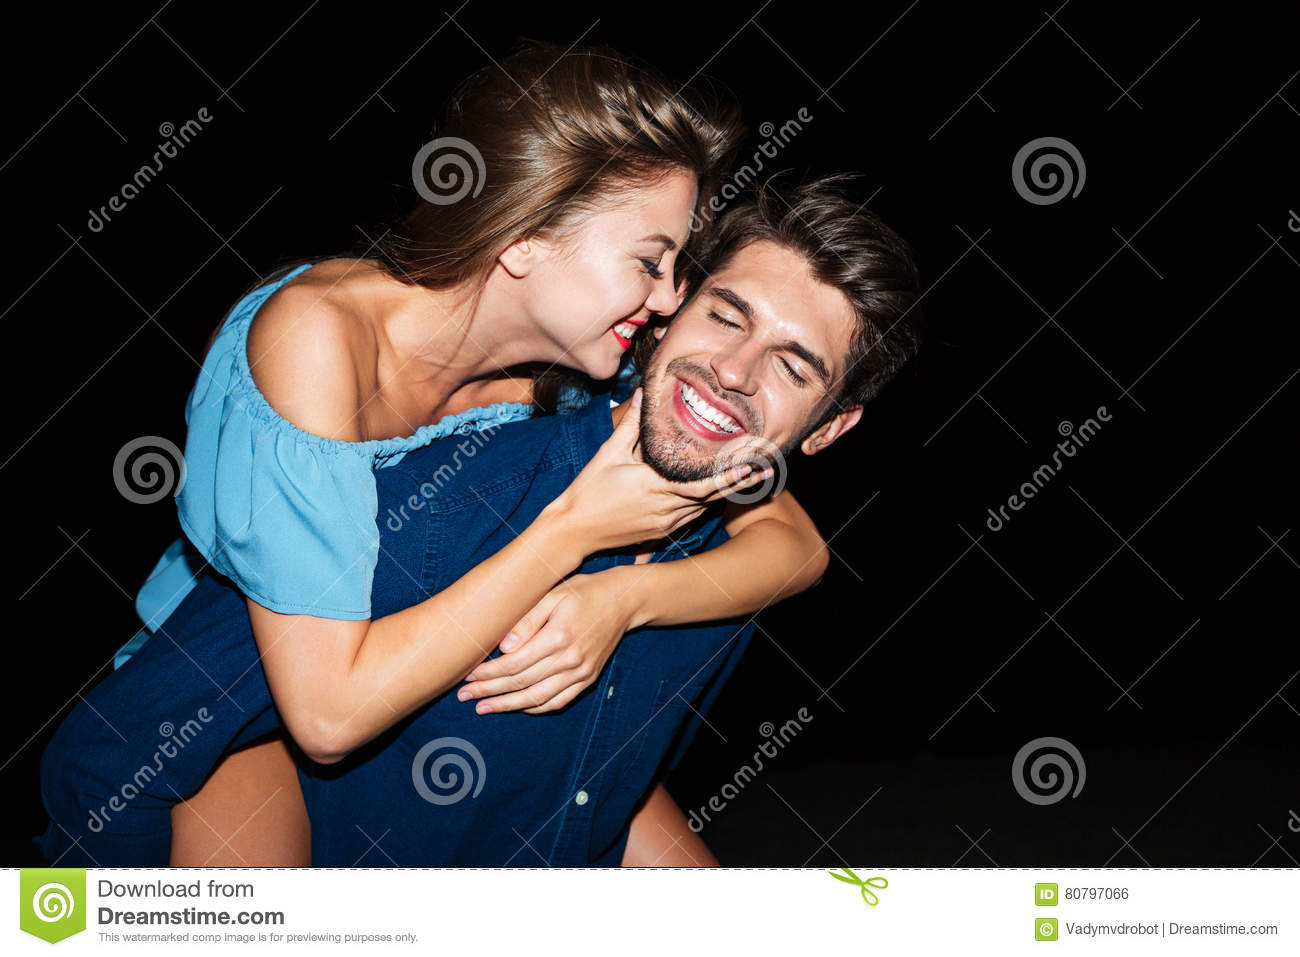 Cheerful young man holding girlfriend on his back at night